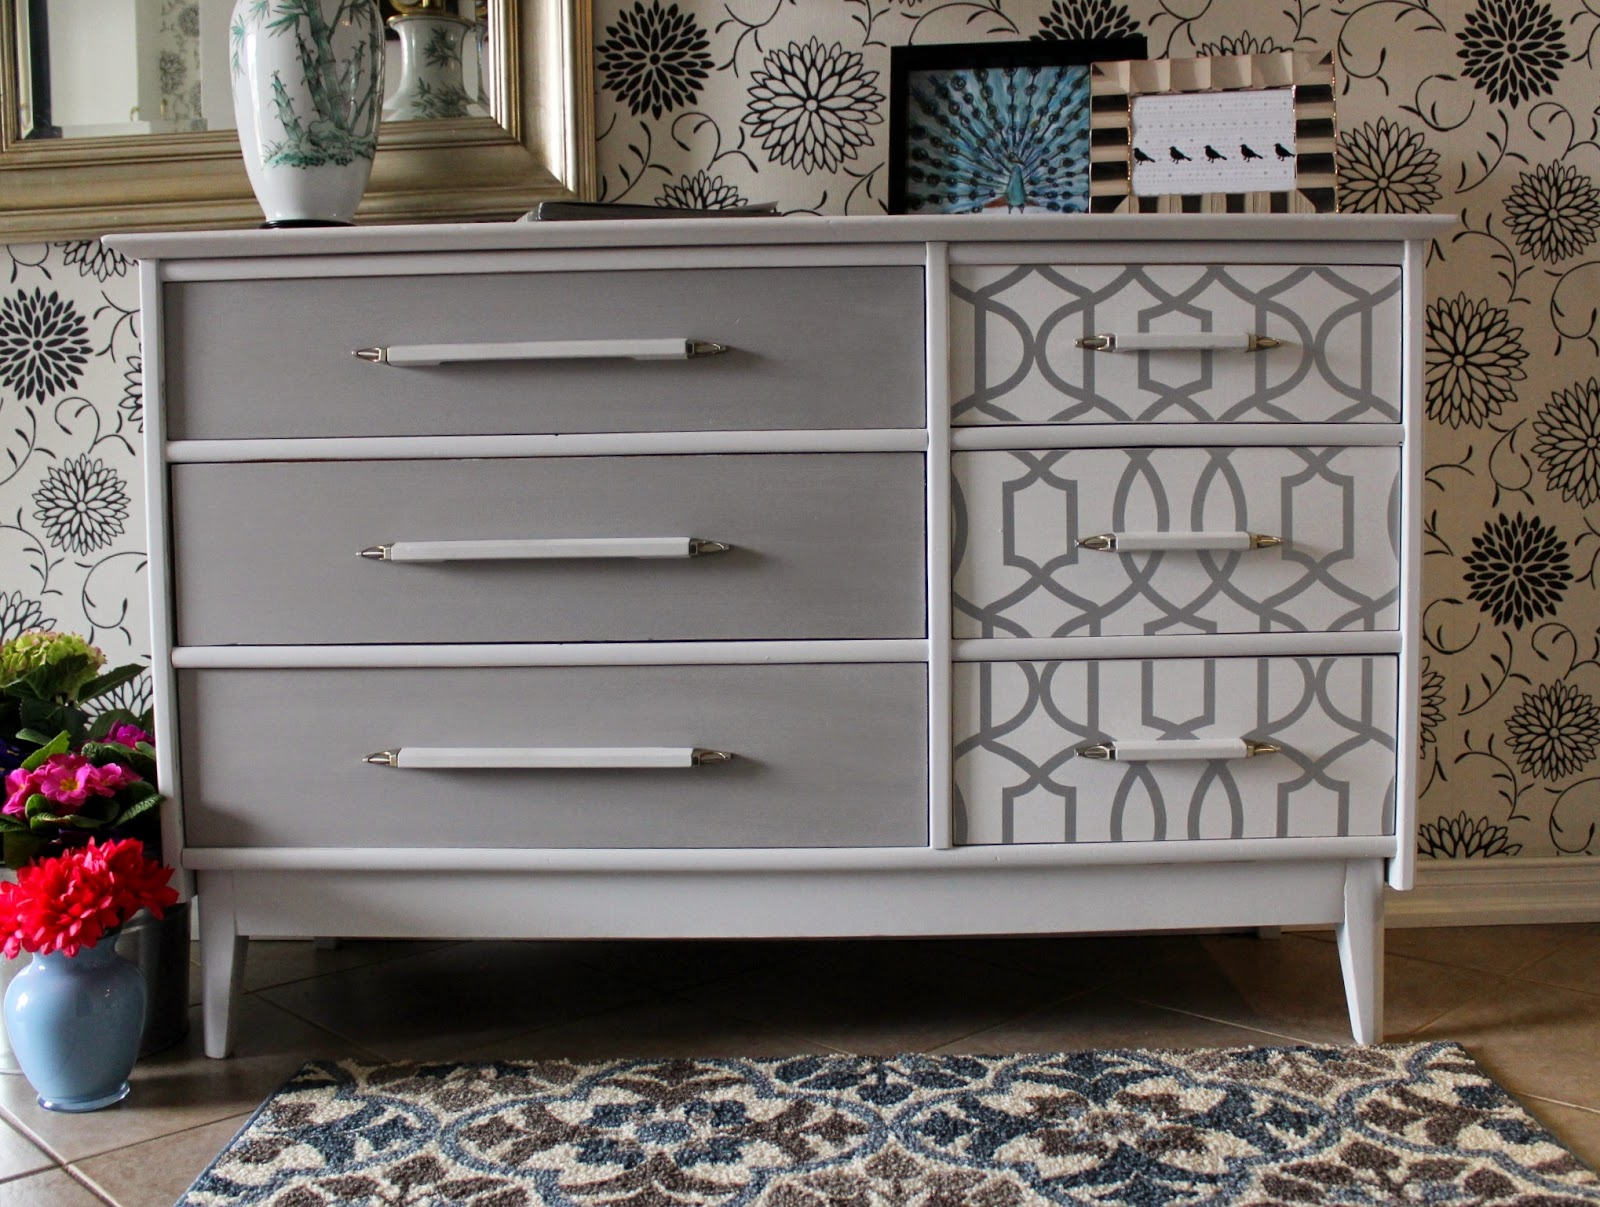 Re tiqued by Rae Bond Wallpaper and Gray Dresser 1600x1207